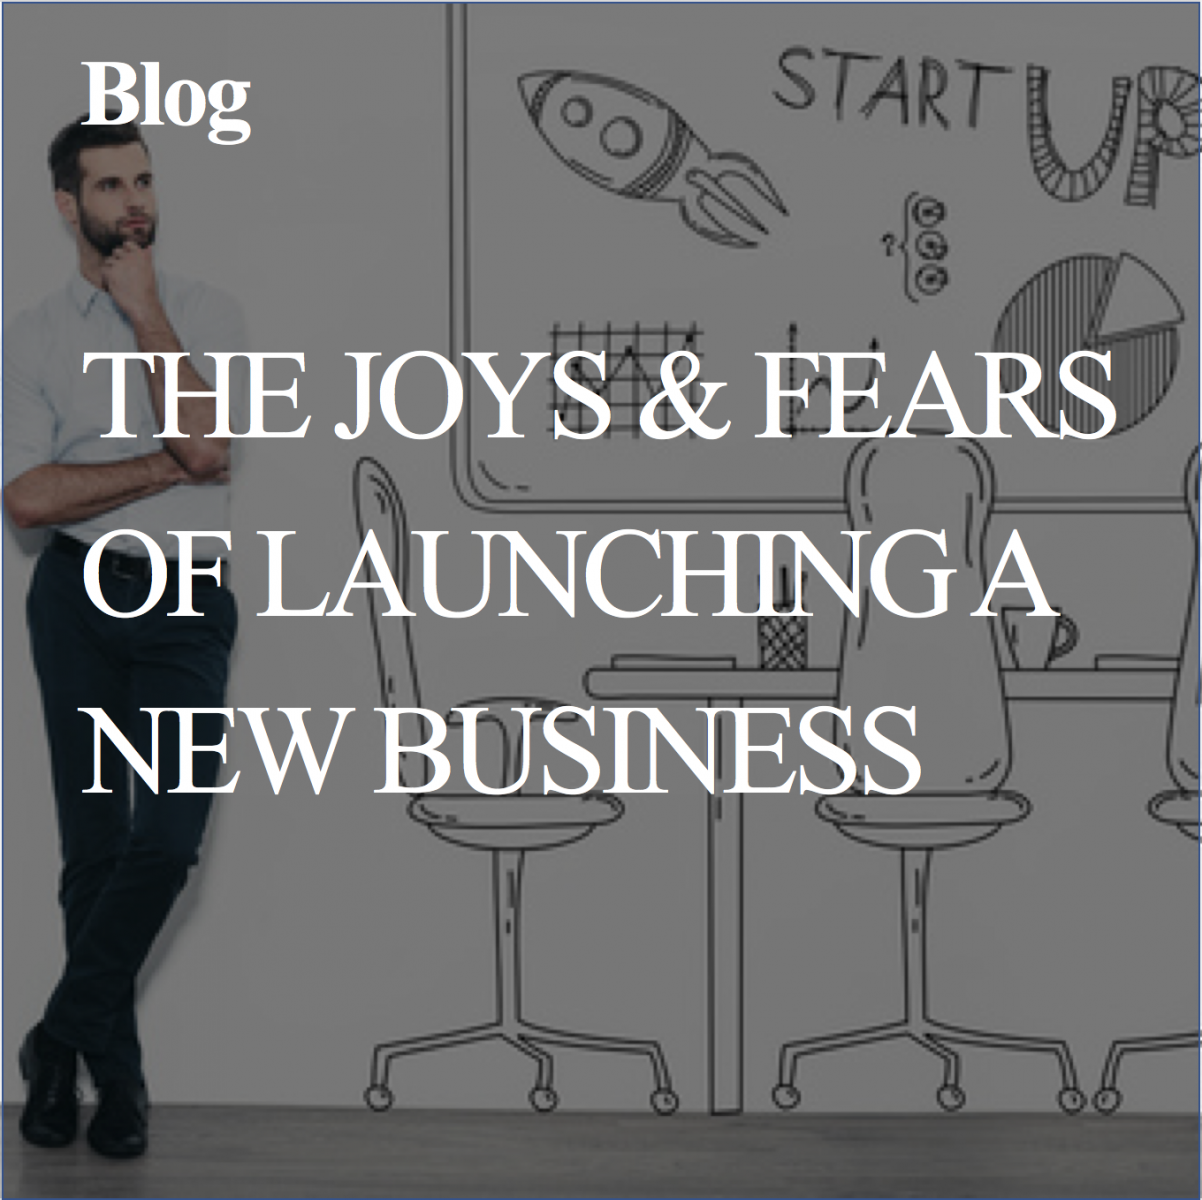 The joys and fears of launching my own business